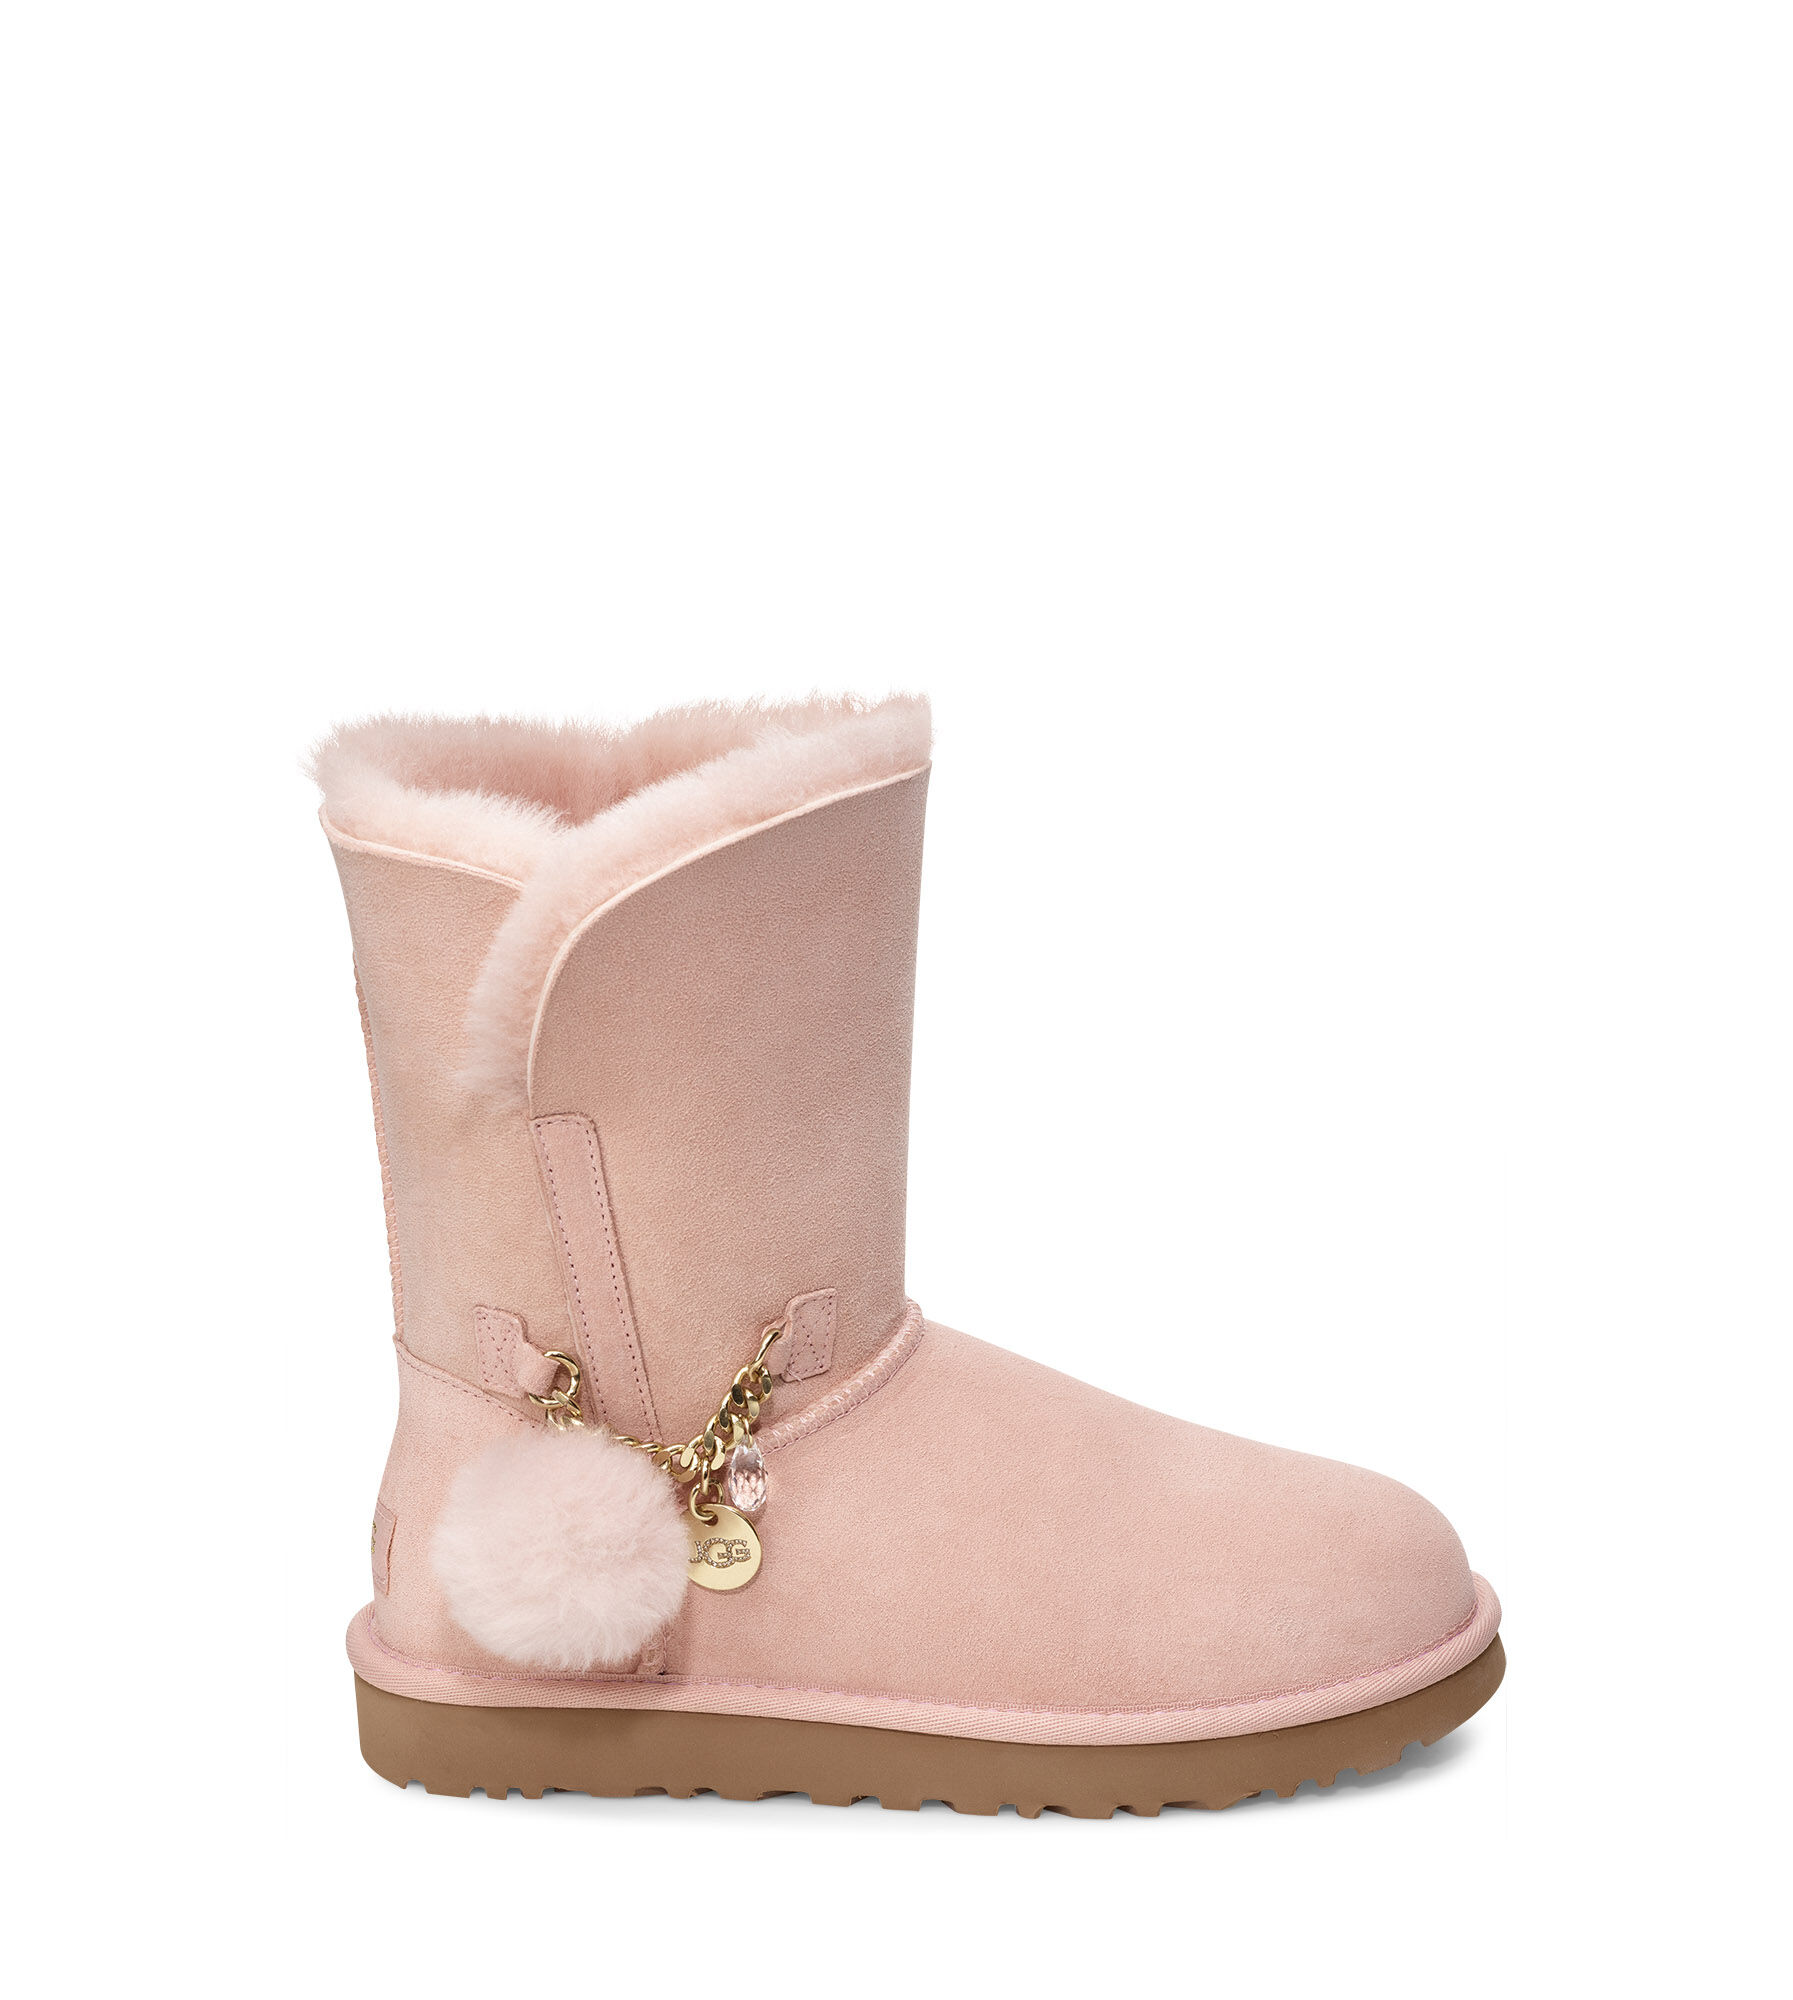 Details about Rose Pink Ugg Boots